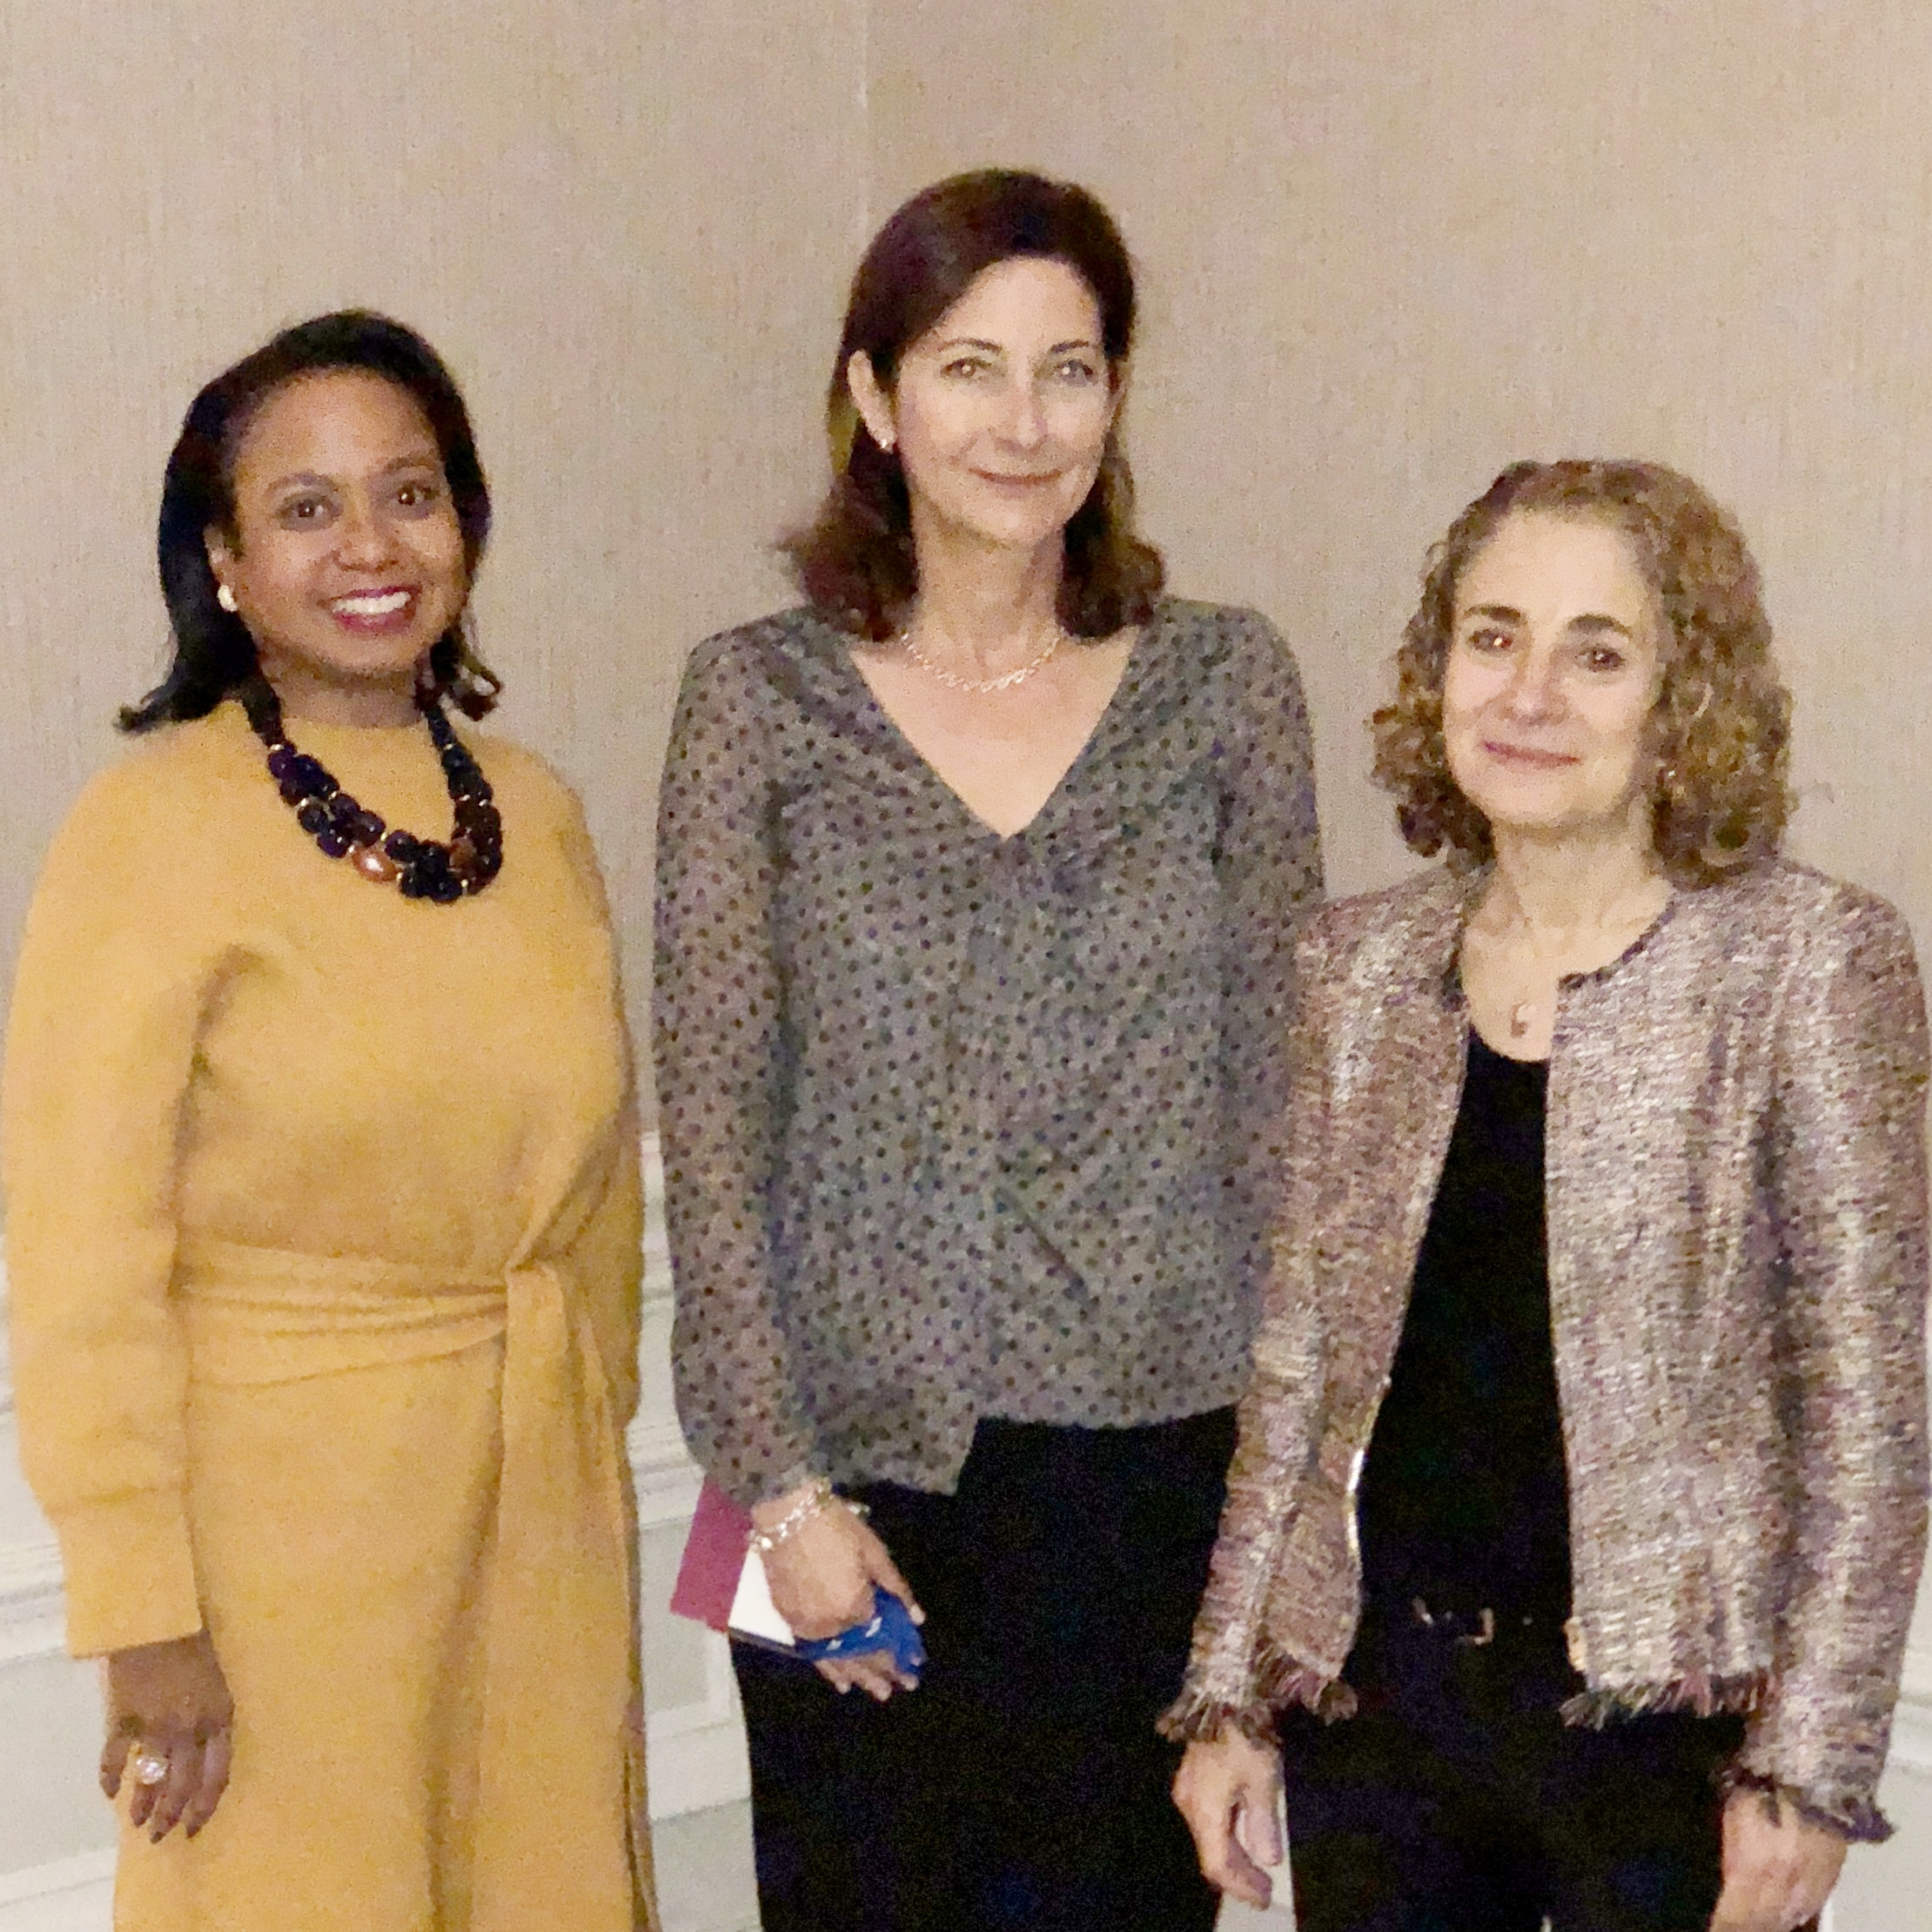 GLI CEO Donna Cryer with fellow panelists Elisabeth Rosenthal, Editor-in Chief of Kaiser Health News, and Amy Tendrich, Founder/Editor-in-Chief of DiabetesMine